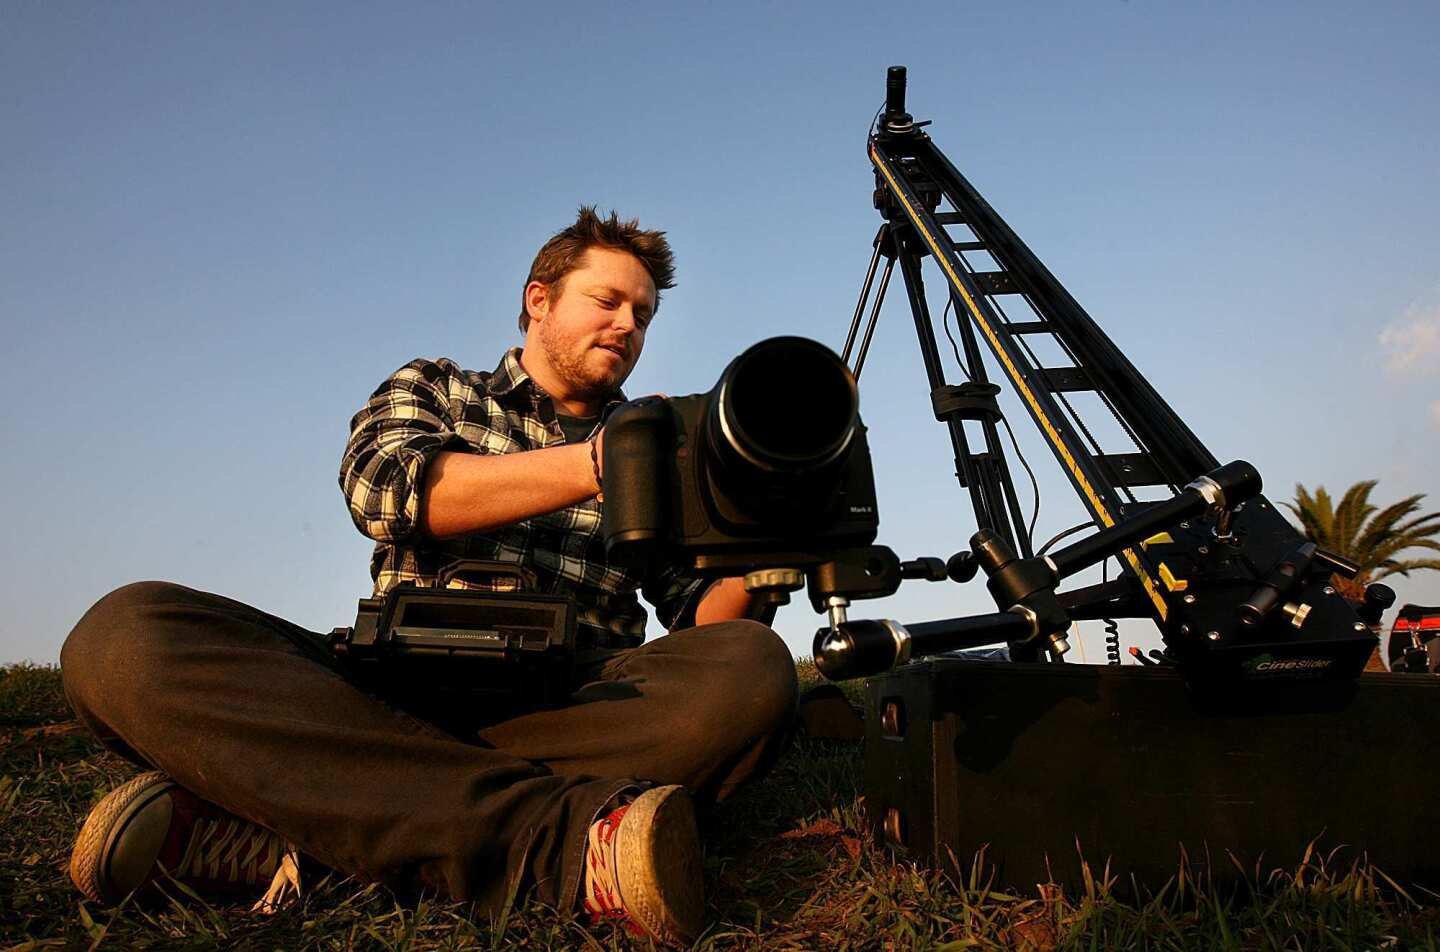 Photographer Colin Rich sets up equipment to shoot a time-lapse sequence of the sun setting on downtown Los Angeles.